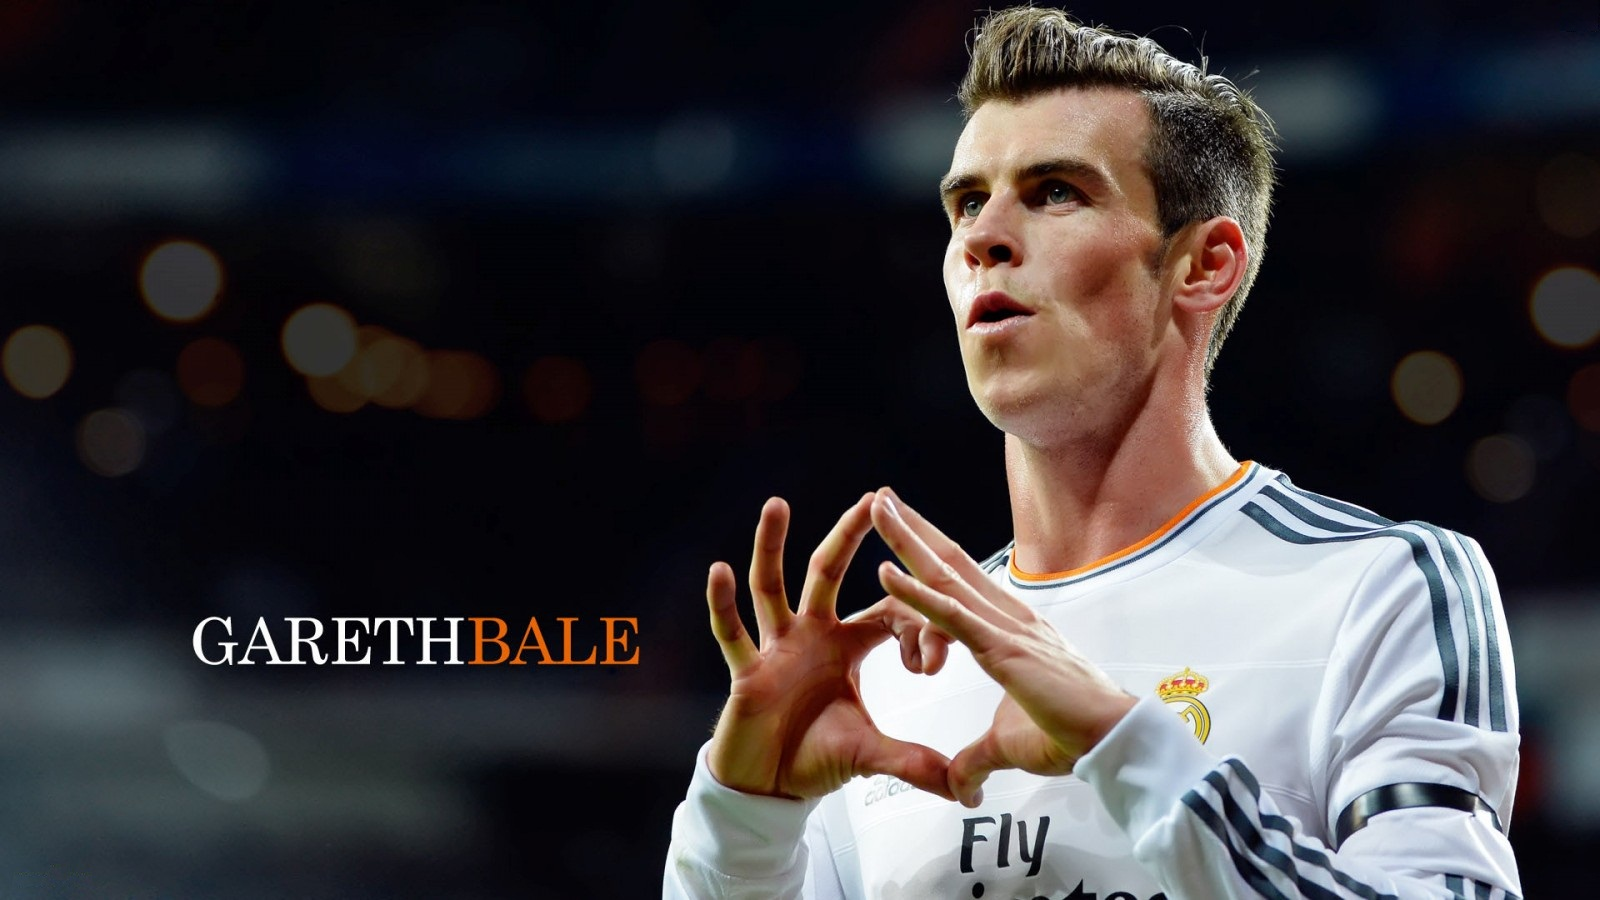 3d Animated Wallpaper For Laptop Free Download Gareth Bale Wallpapers Hd